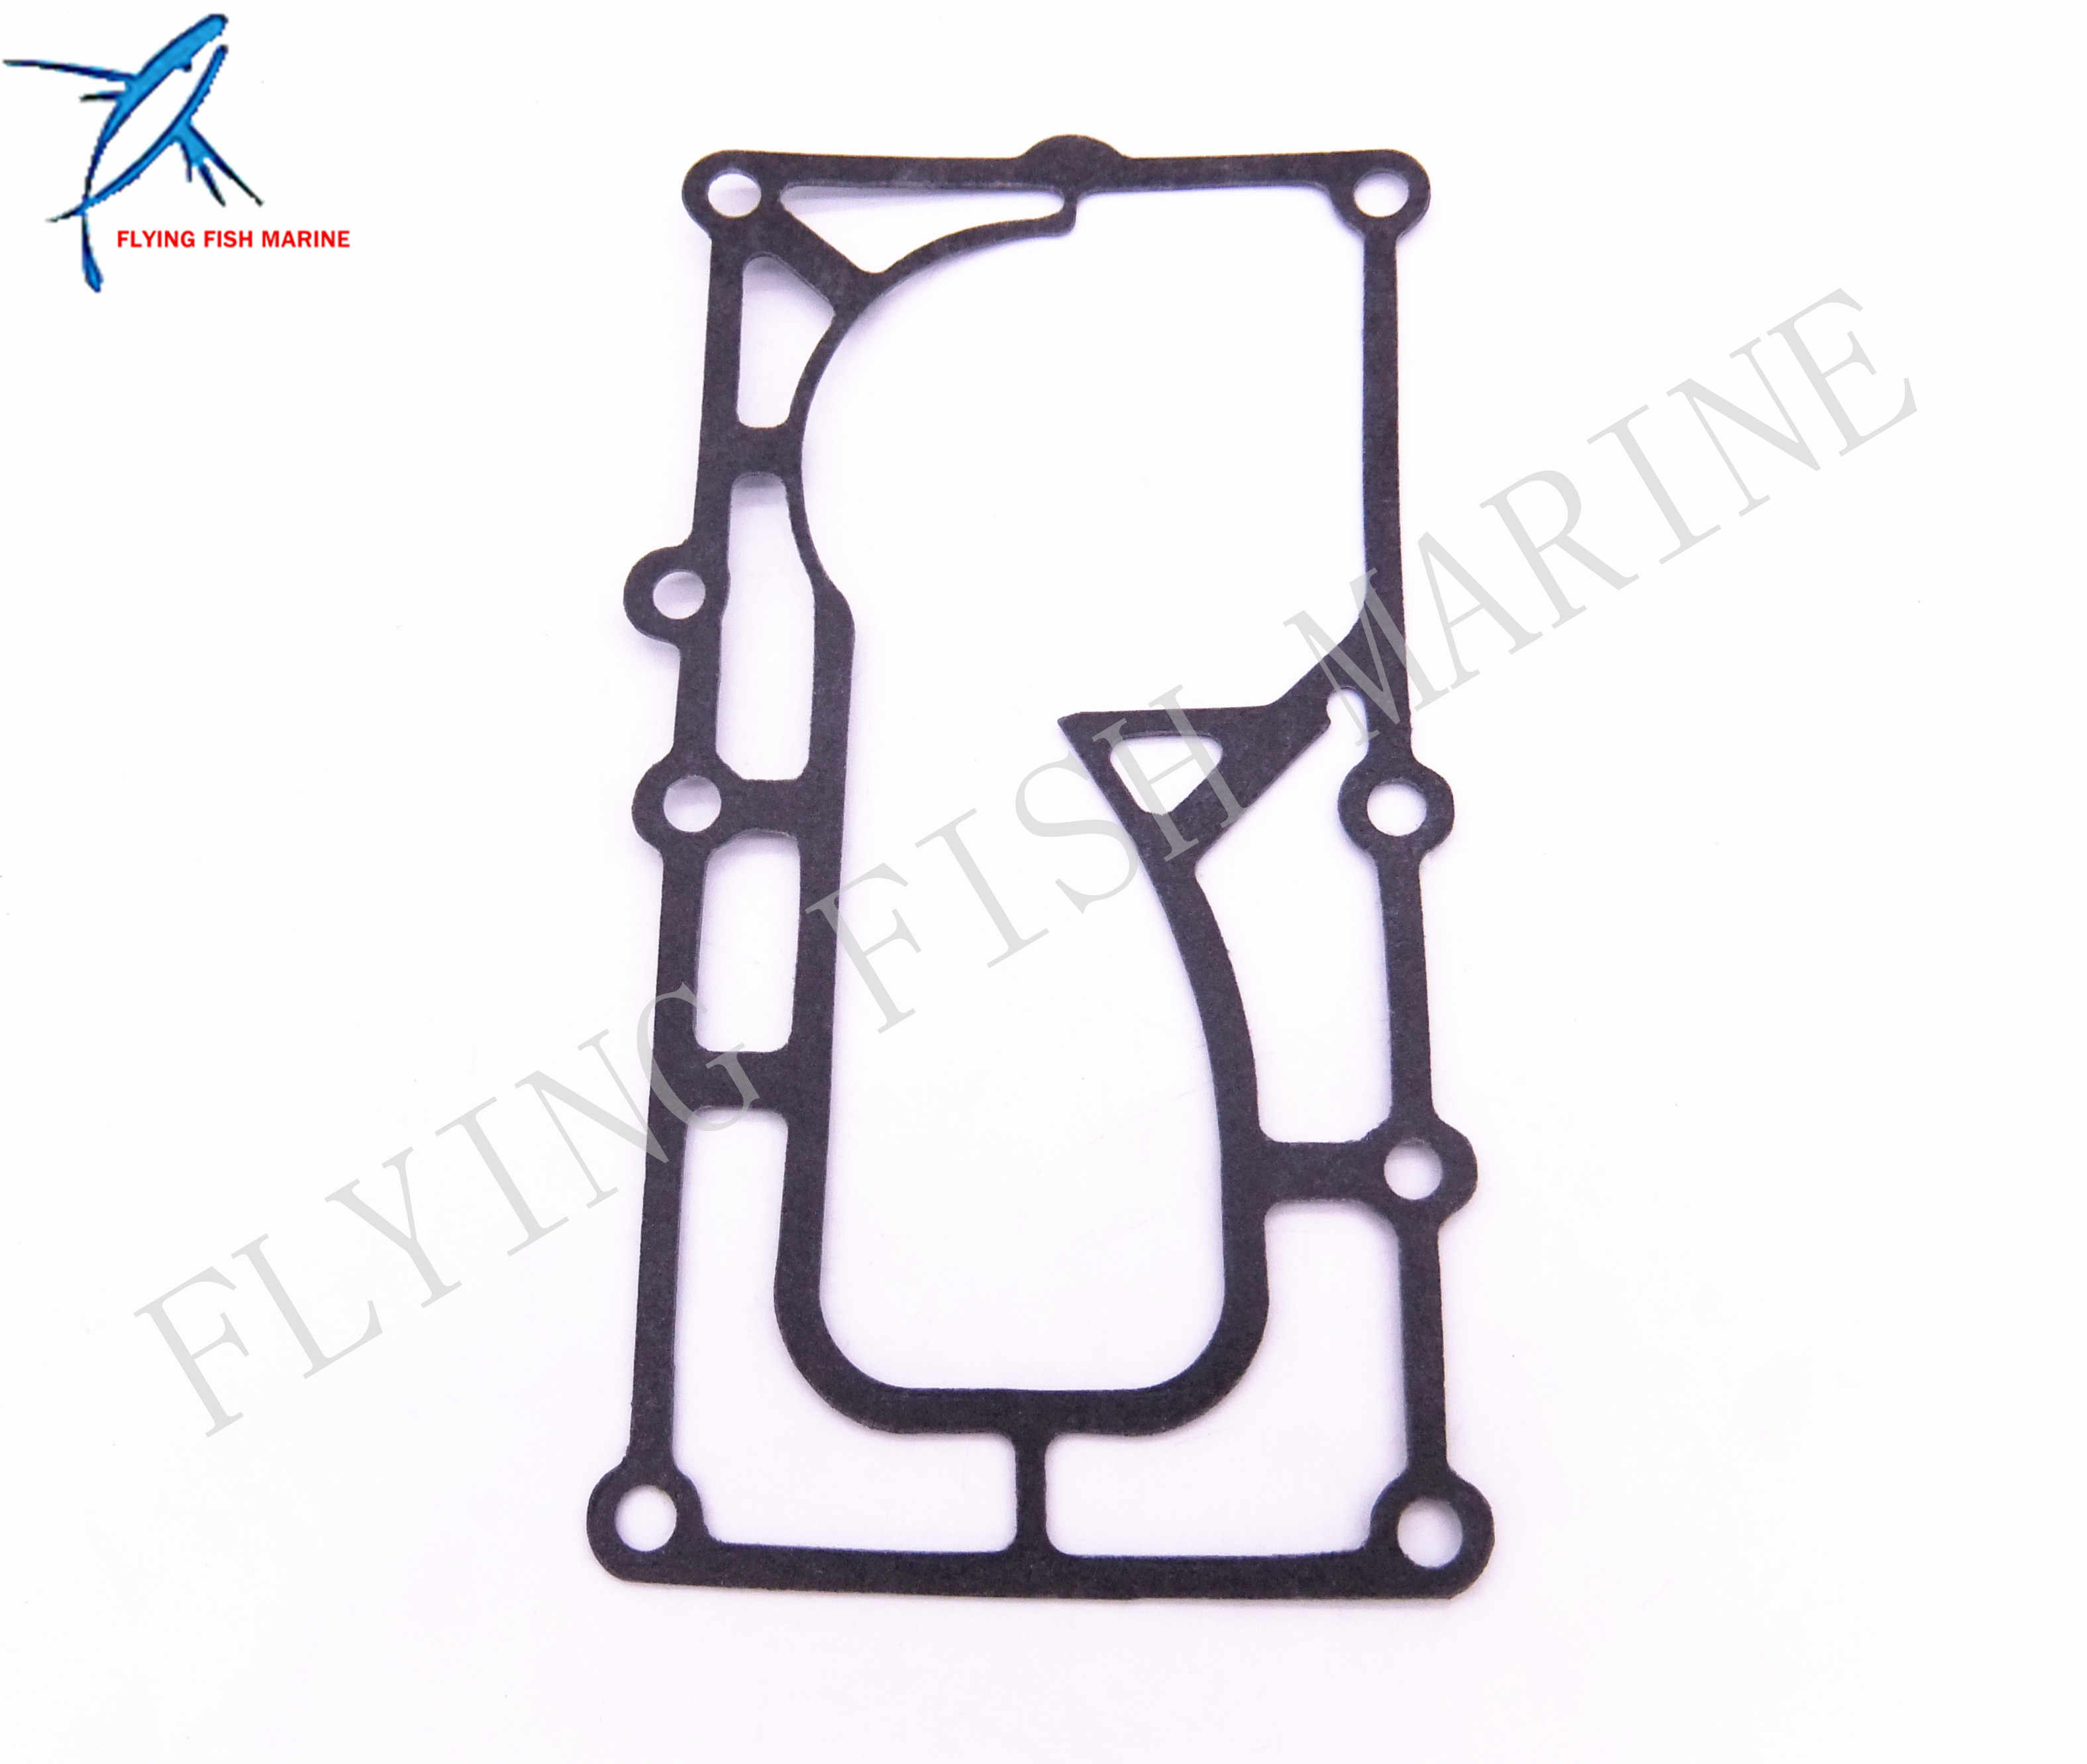 Outboard Engine 369-61012-0 36961-0120M Drive Shaft Housing Gasket for Tohatsu Nissan 2-Stroke 4HP 5HP Boat Motor Free Shipping